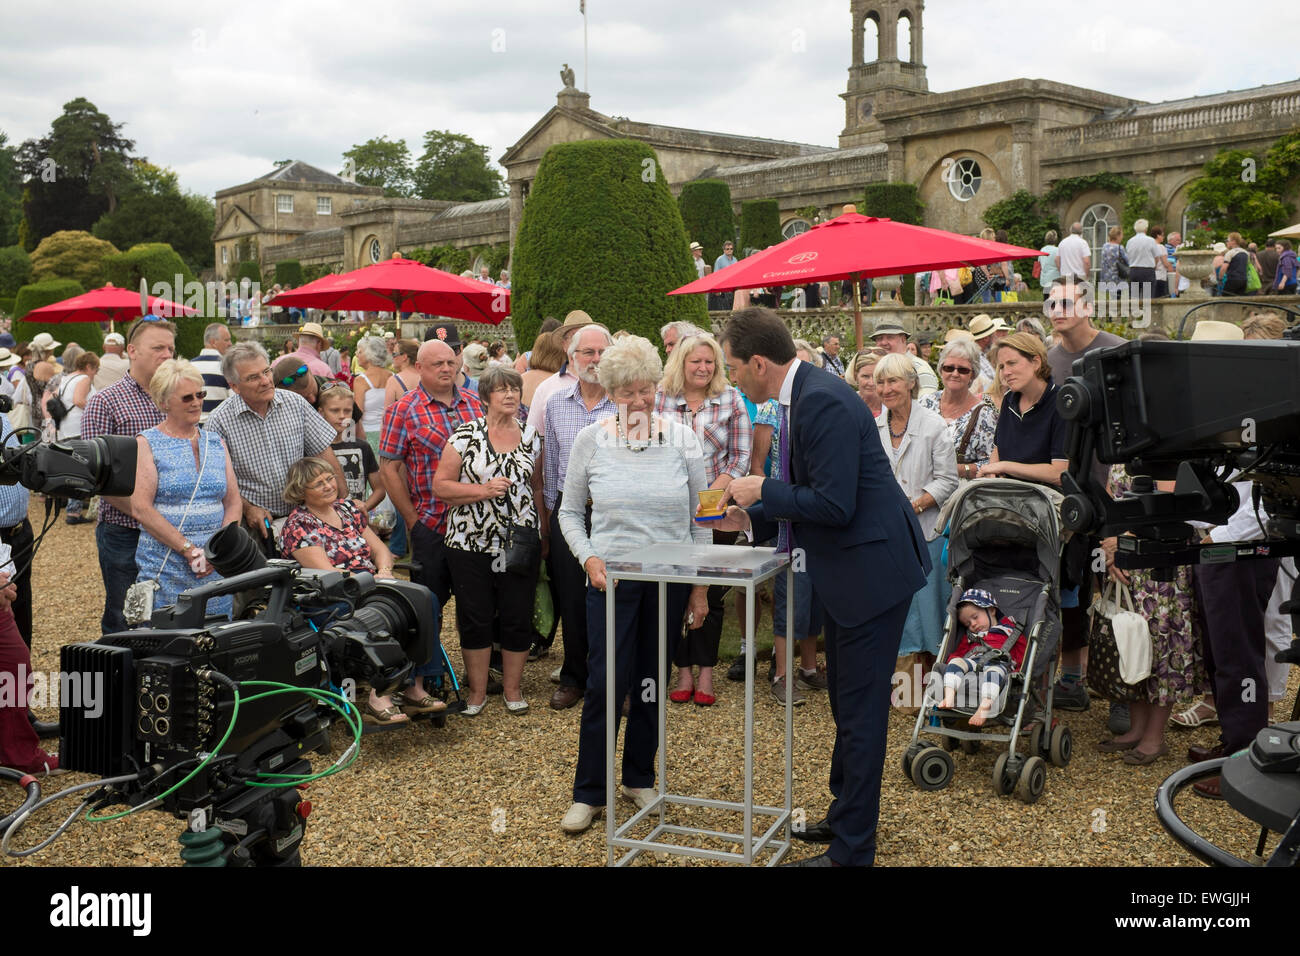 John Benjamin filming the Antiques Roadshow at Bowood House Calne Wiltshire June 2015 - Stock Image